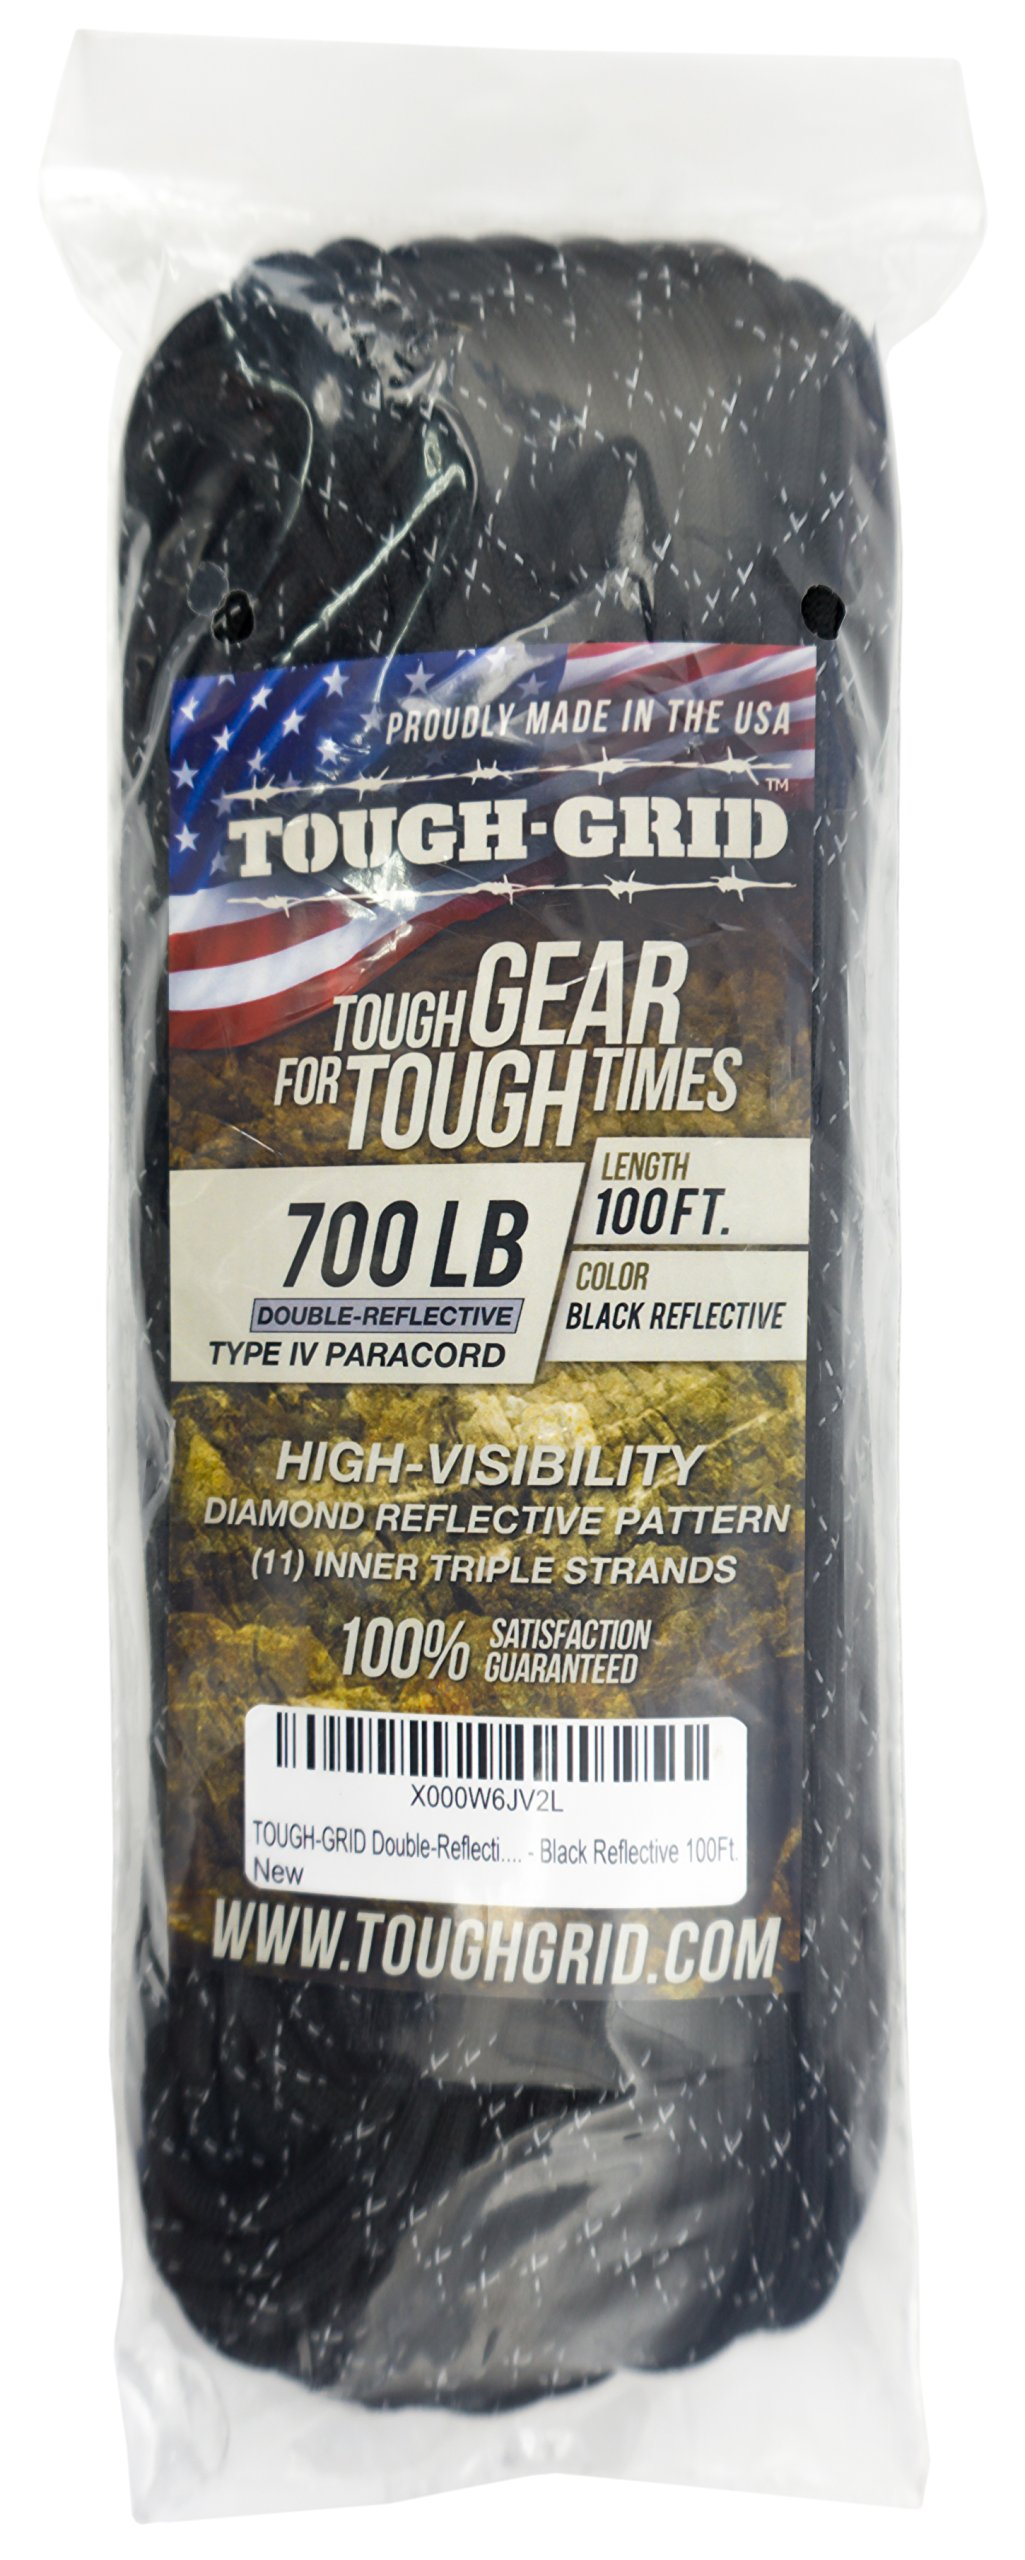 TOUGH-GRID New 700lb Double-Reflective Paracord/Parachute Cord - 2 Vibrant Retro-Reflective Strands for The Ultimate High-Visibility Cord - 100% Nylon - Made in USA. - 500Ft. Black Reflective by TOUGH-GRID (Image #4)